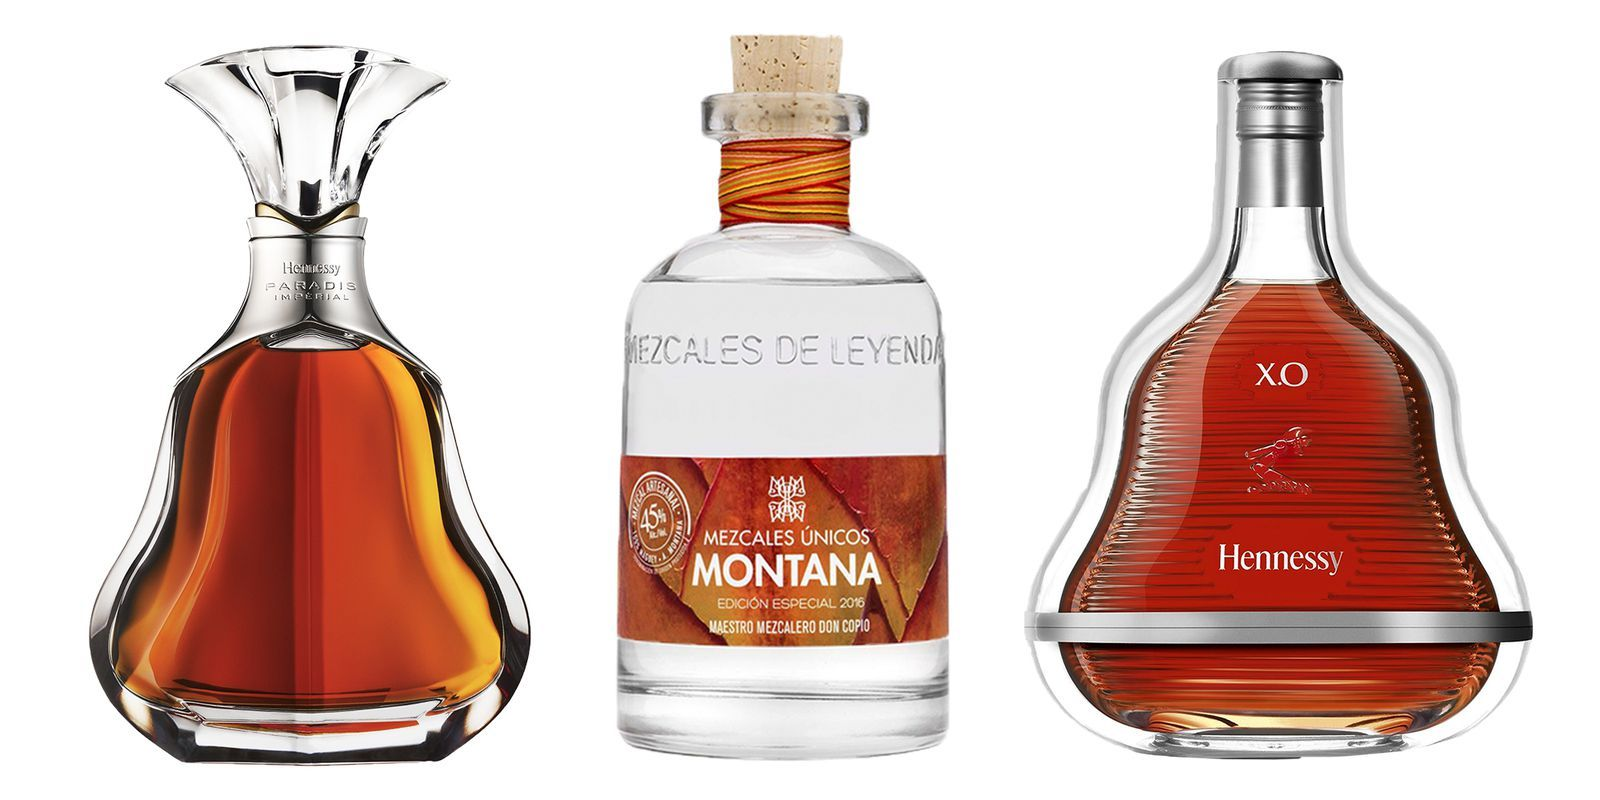 15 Of The Fanciest Rare Liquors To Drink Now Distilled Beverage Drinks Liquor